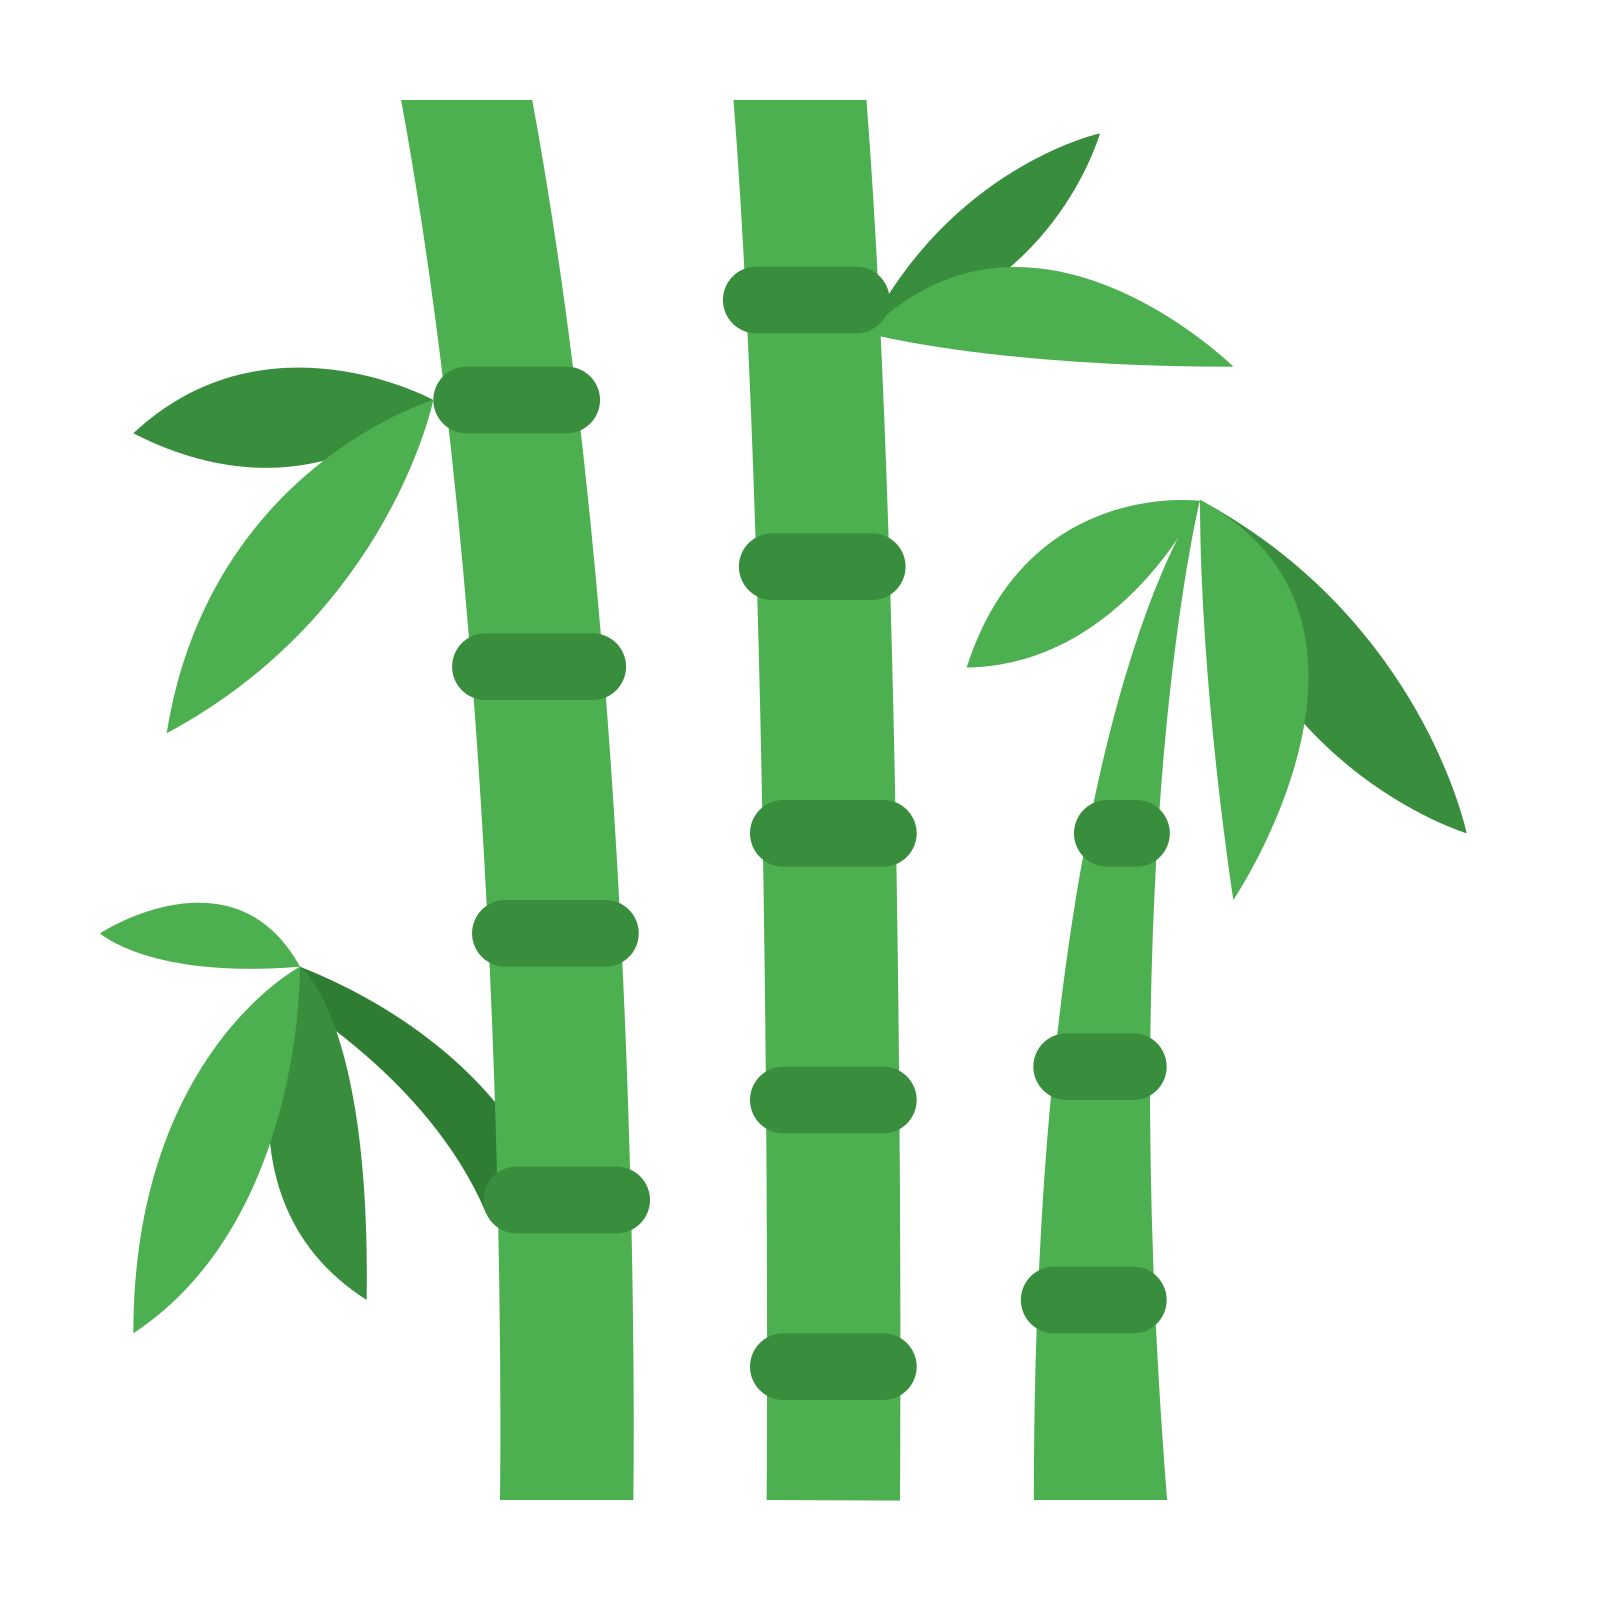 Bamboo house forest clipart image transparent Download Bamboo Leaf Clipart HQ PNG Image | FreePNGImg image transparent